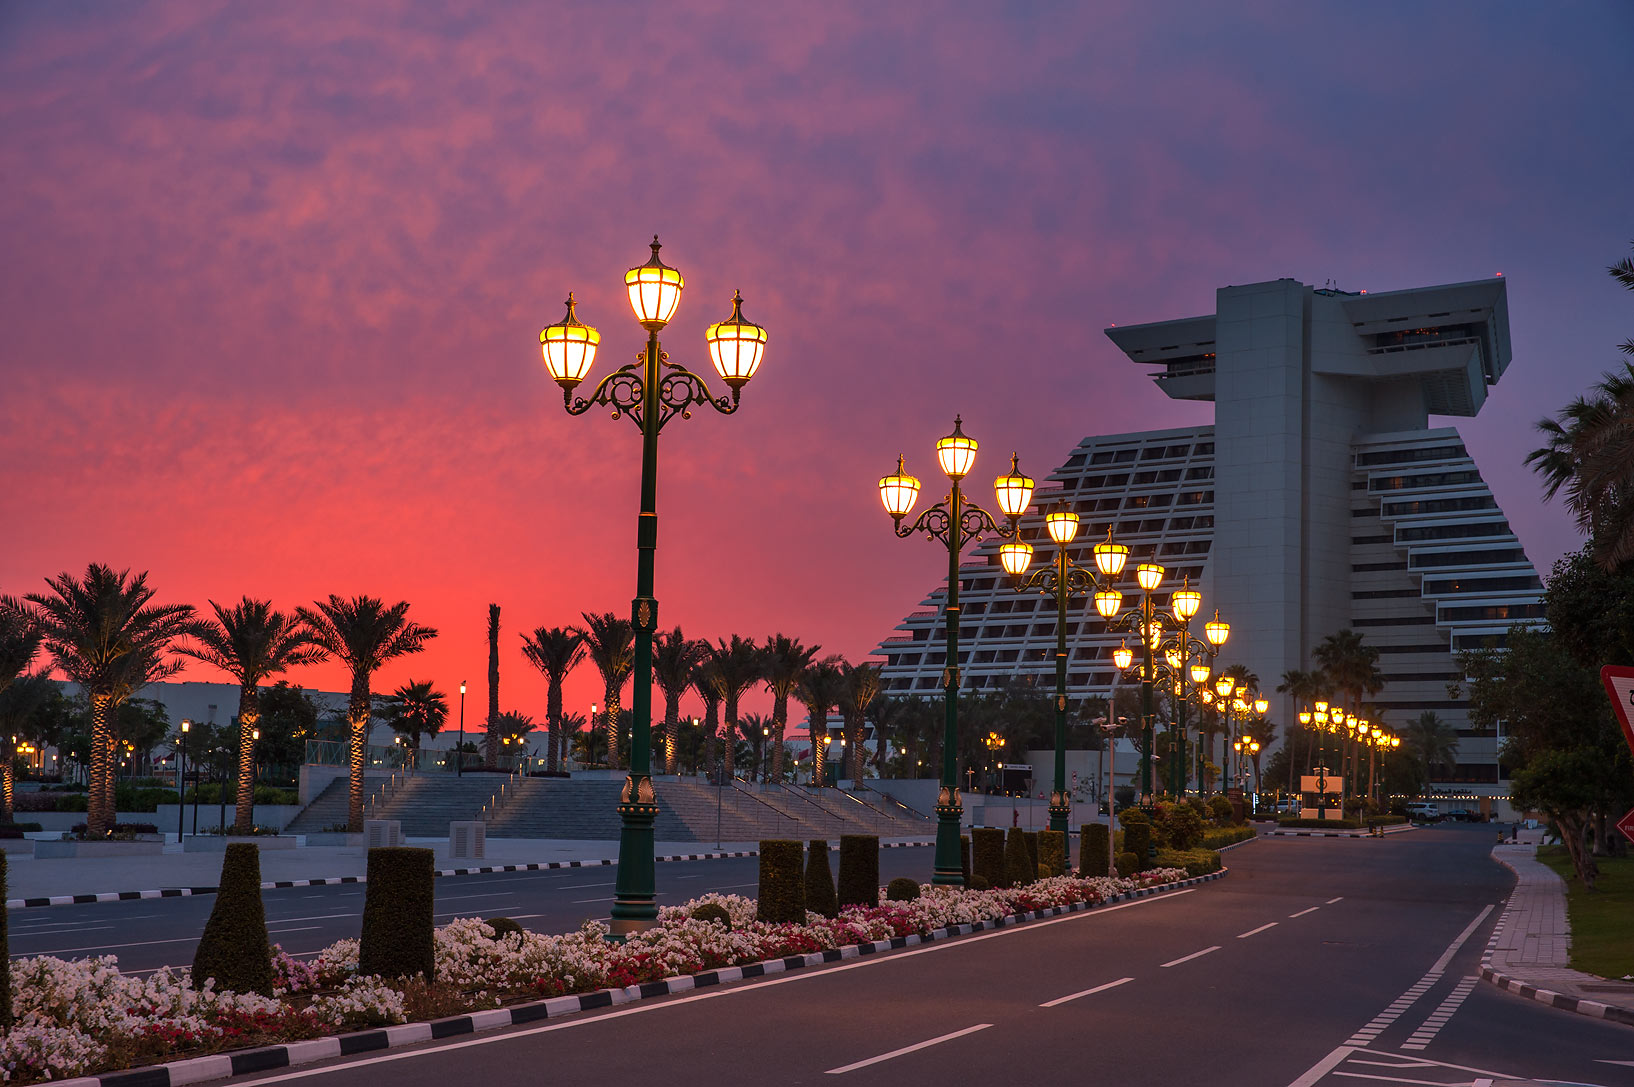 Sheraton Hotel at sunrise from Corniche St.. Doha, Qatar